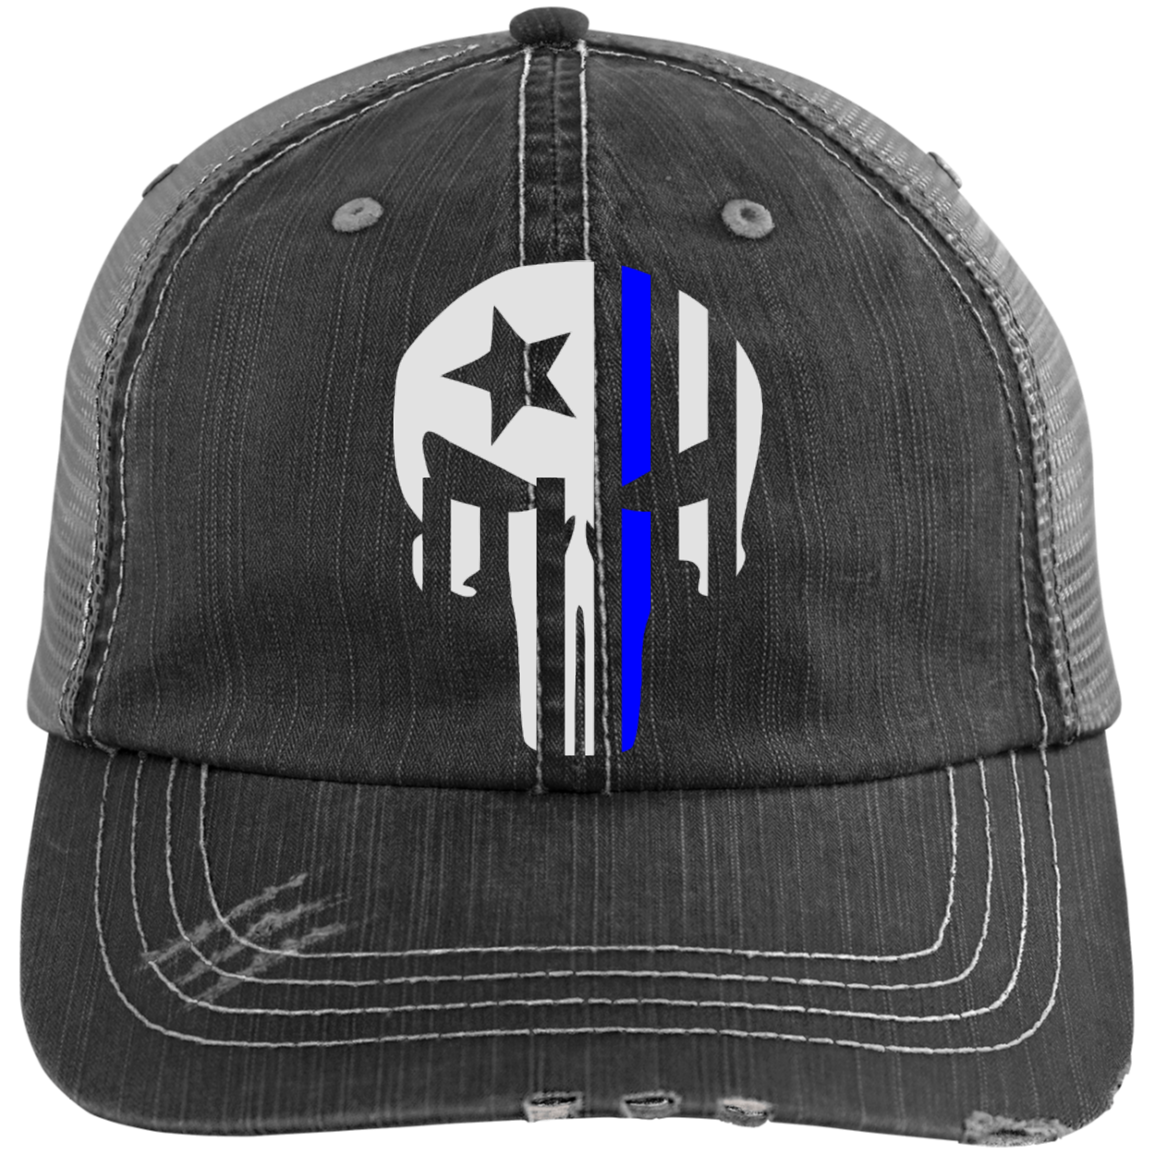 9df2a2eca3c Awesome Thin Blue Line Police Distressed Cap Hat Check it out here https